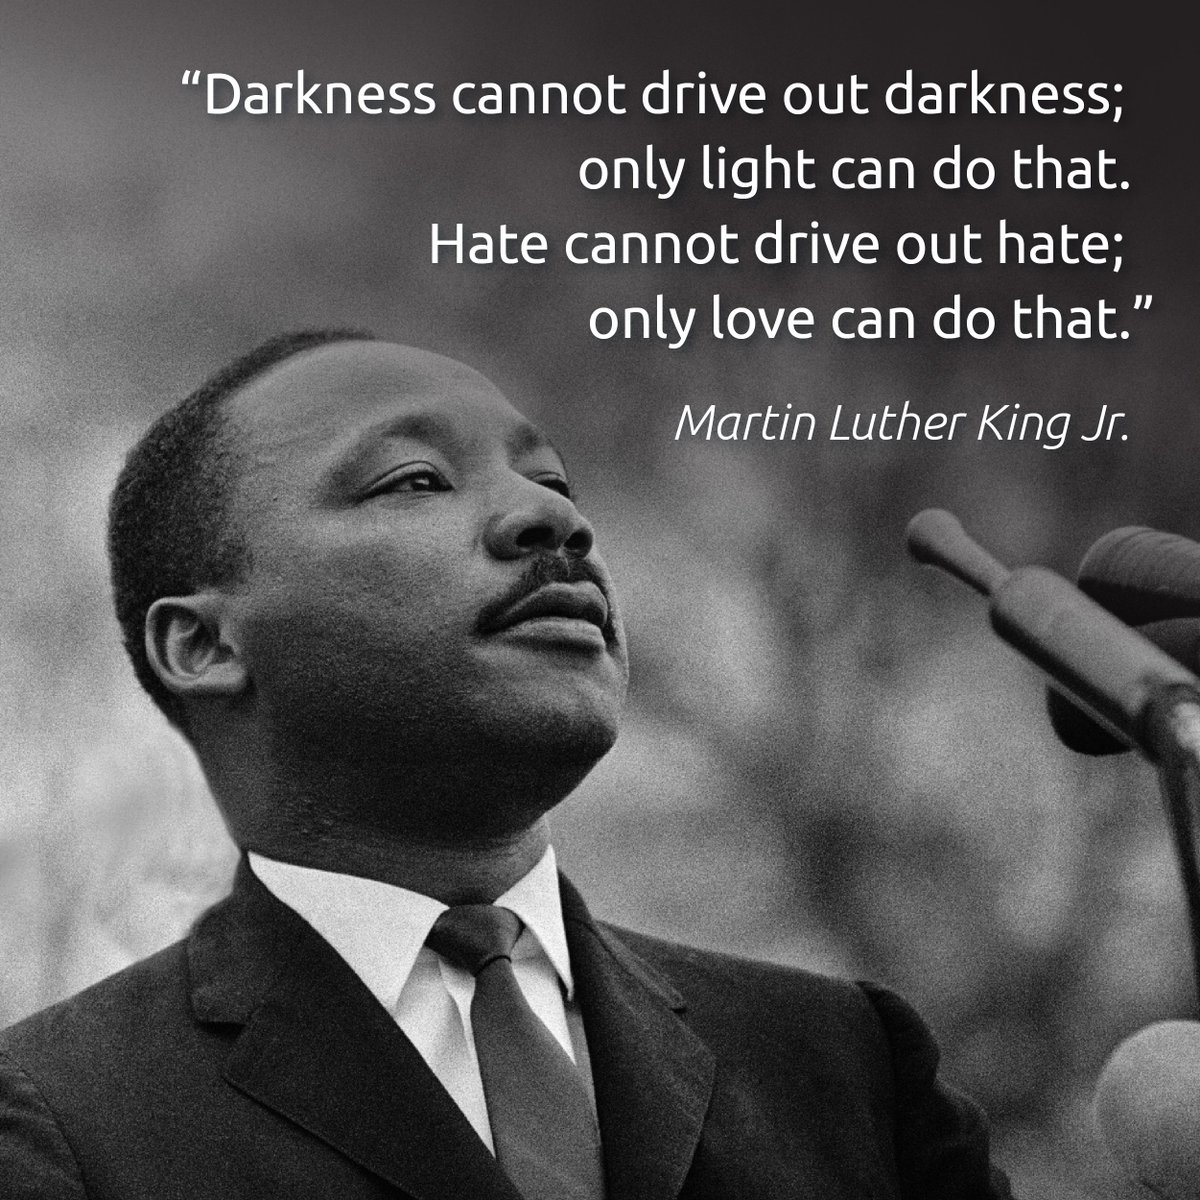 """""""Darkness cannot drive out darkness; only light can do that. Hate cannot drive out hate; only love can do that."""" Today, we honor the work and legacy of the great Dr. Martin Luther King Jr. #MLK #IHaveADream"""